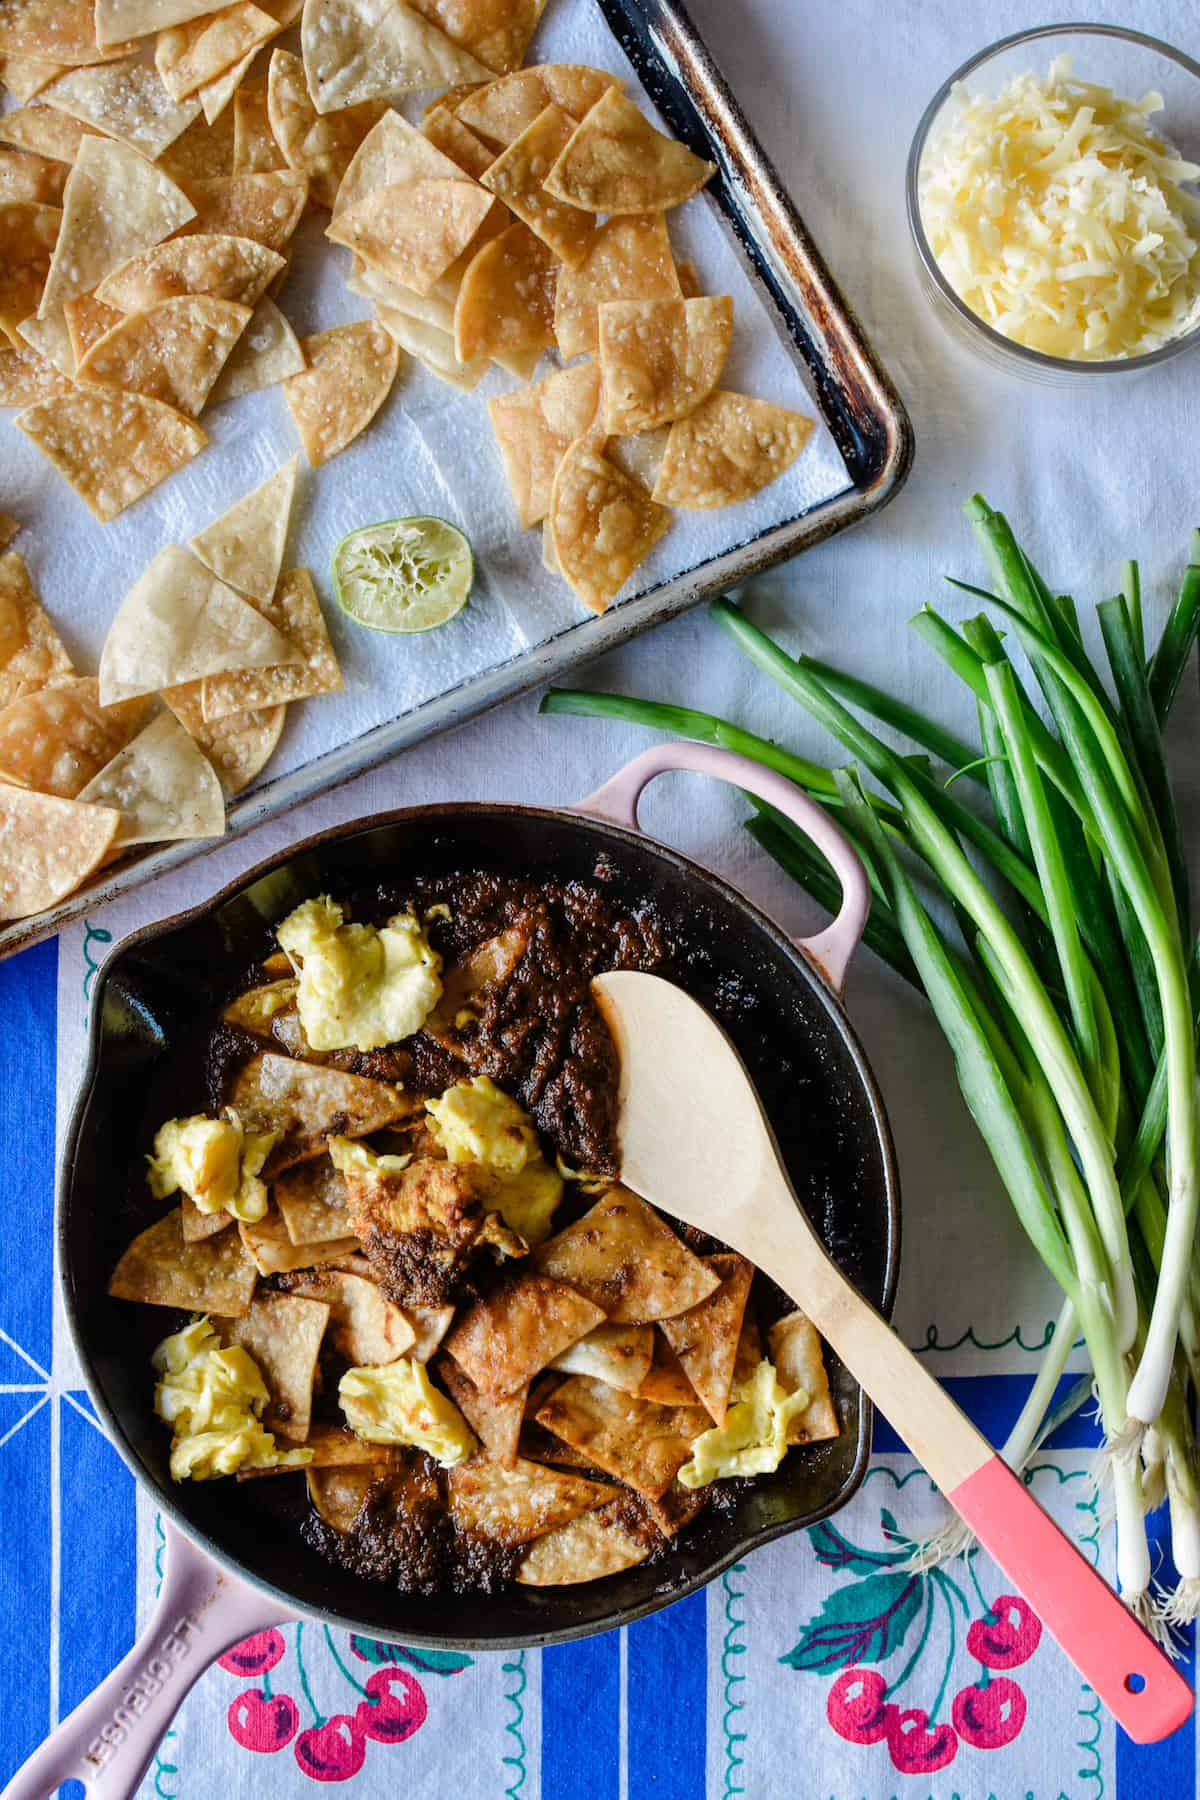 An overhead image of Mexican chilaquiles in a frying pan with scallions to one side and a bowl of grated cheese on another.